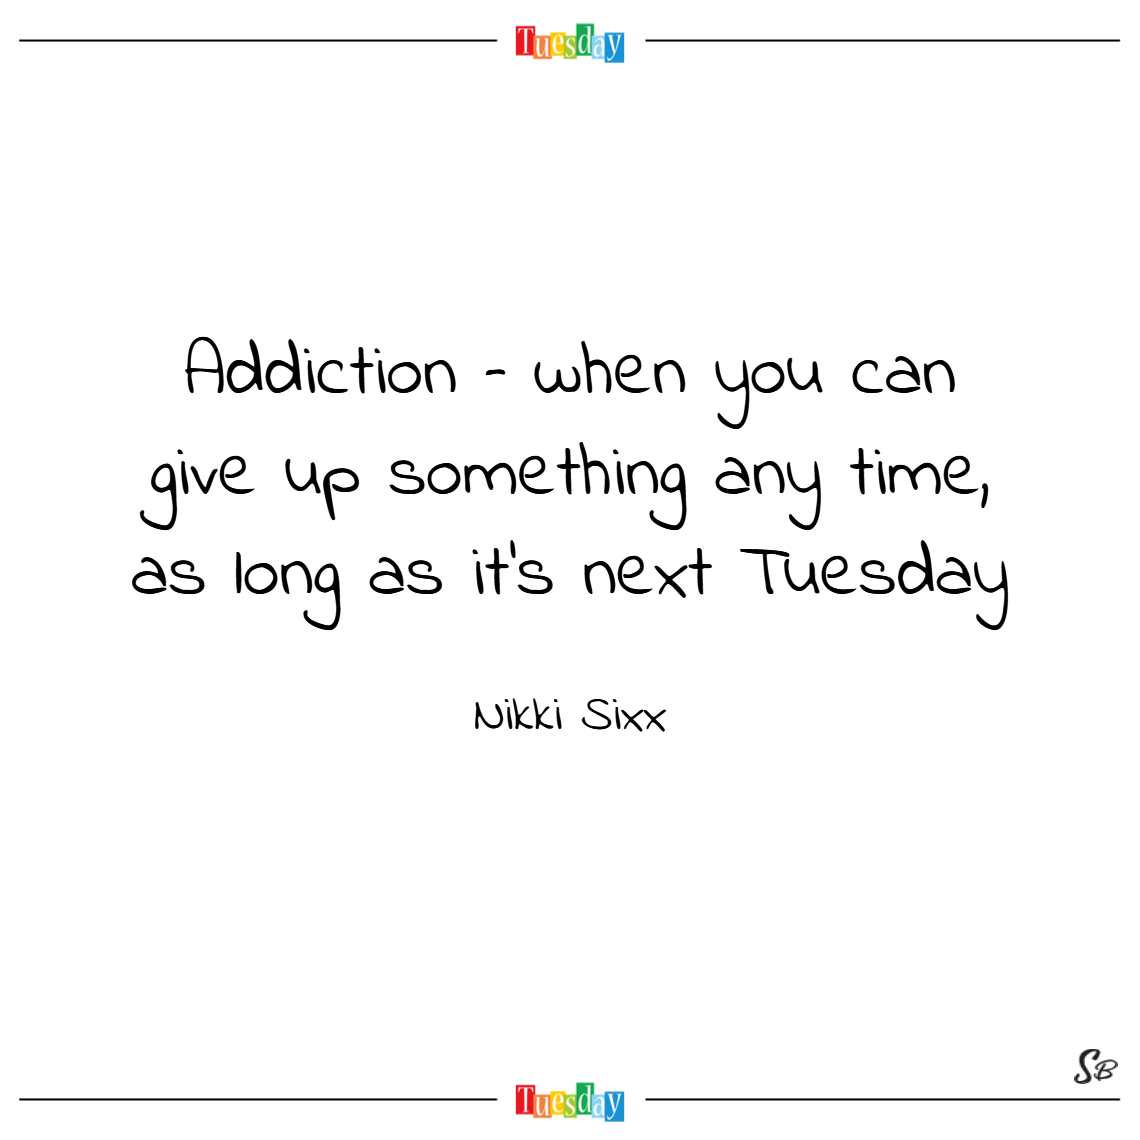 Addiction – when you can give up something any time, as long as it's next tuesday. – nikki sixx